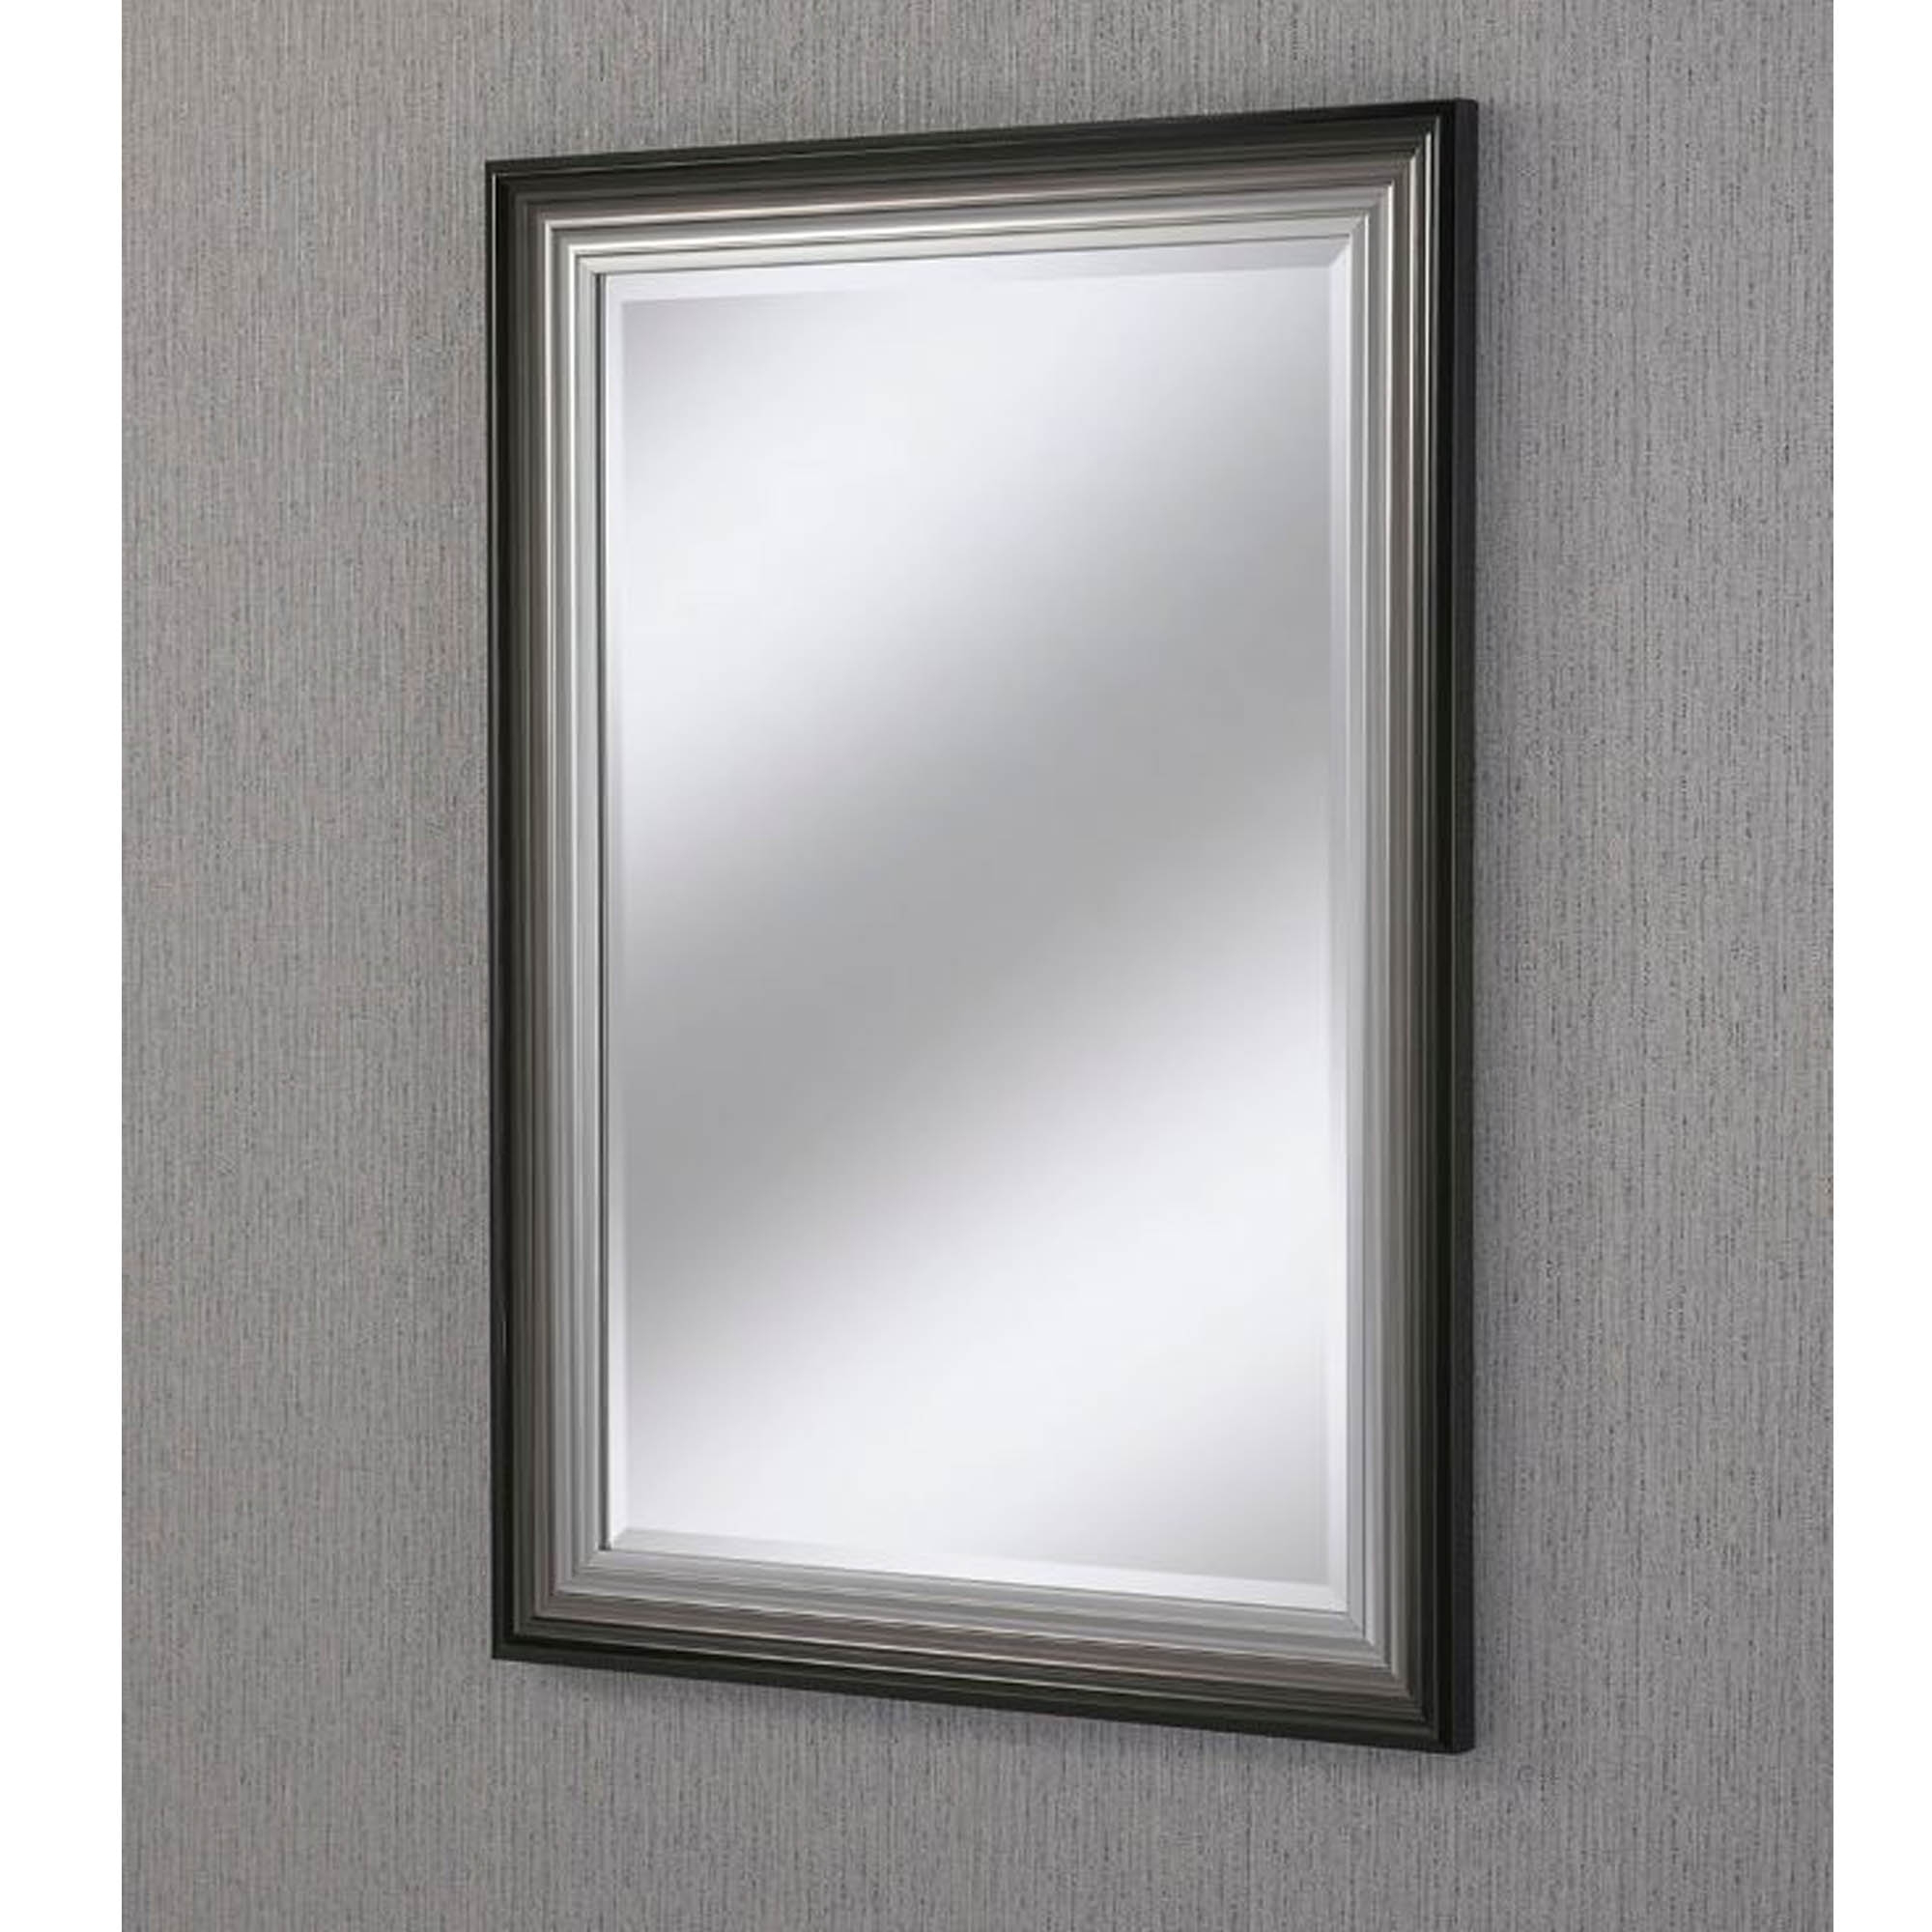 Latest Rectangular Black/silver Beveled Contemporary Wall Mirror With Regard To Contemporary Black Wall Mirrors (View 3 of 20)